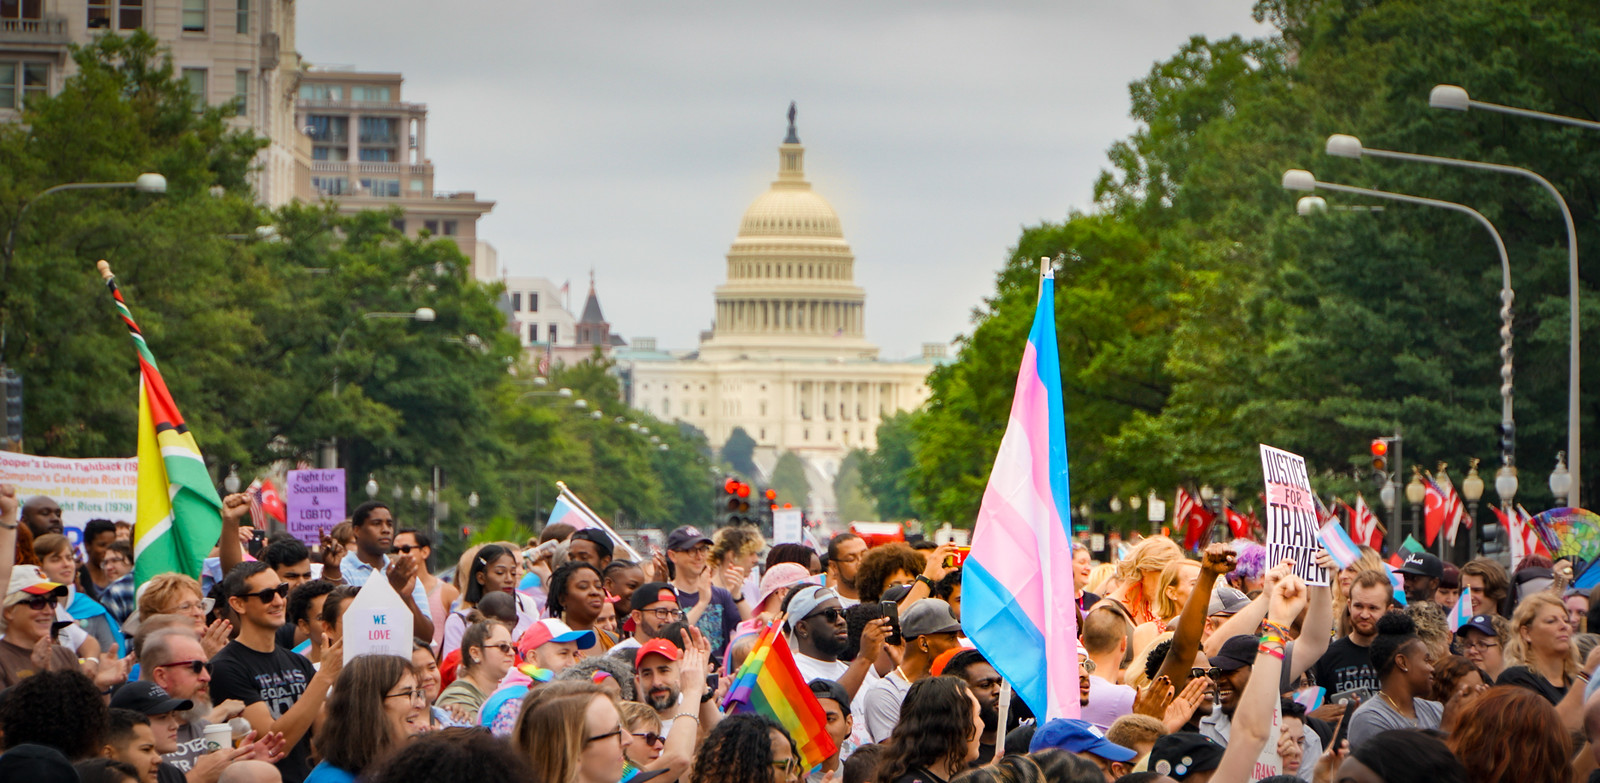 Photos from the Future: National Transgender Visibility March, Washington, DC USA